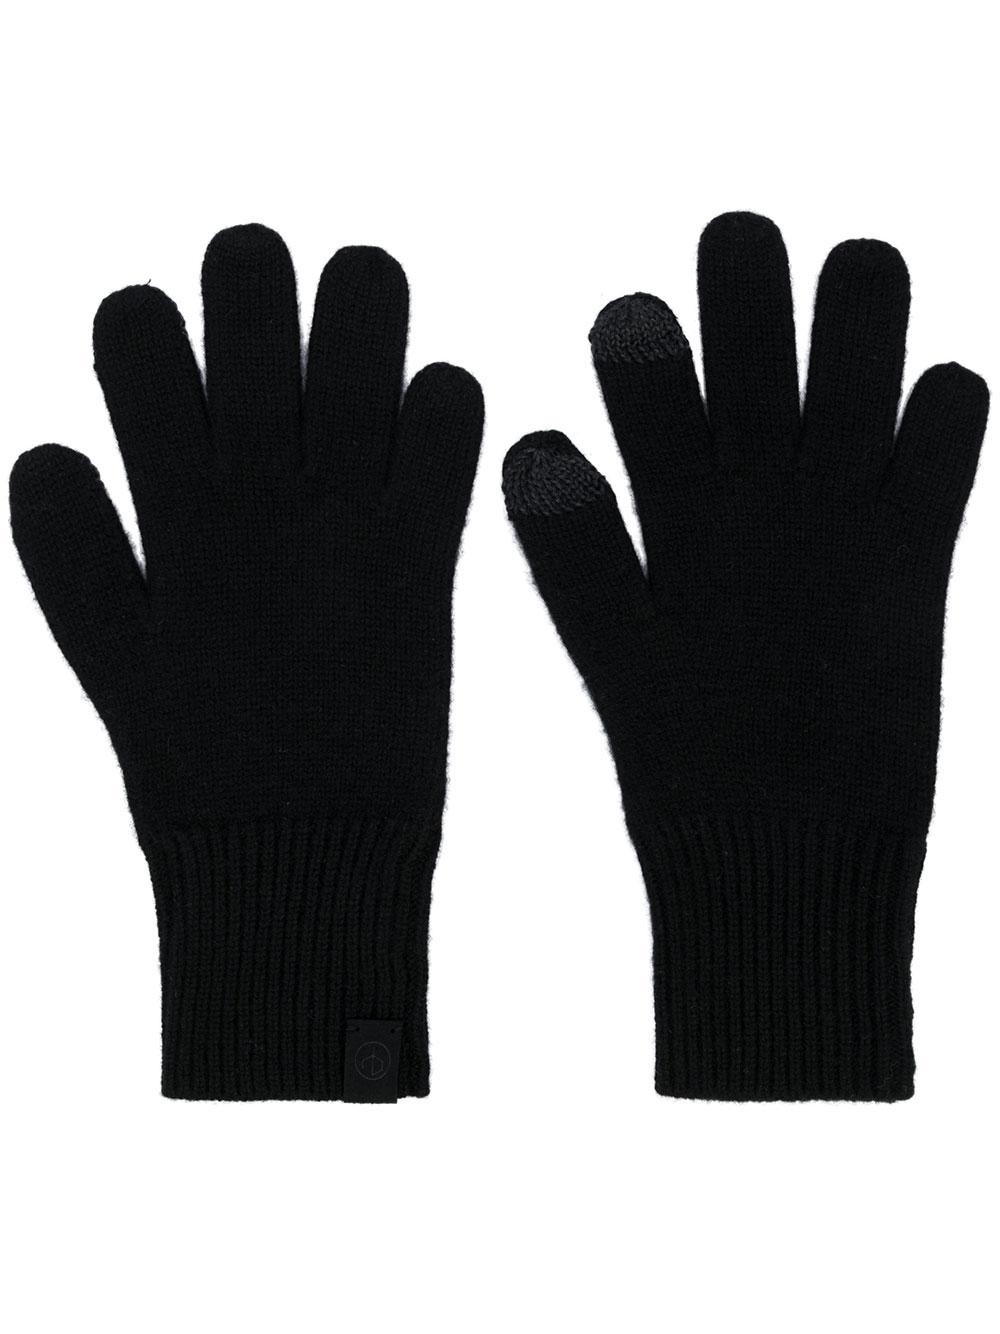 Logan Cashmere Gloves Item # WJK19F00128T12